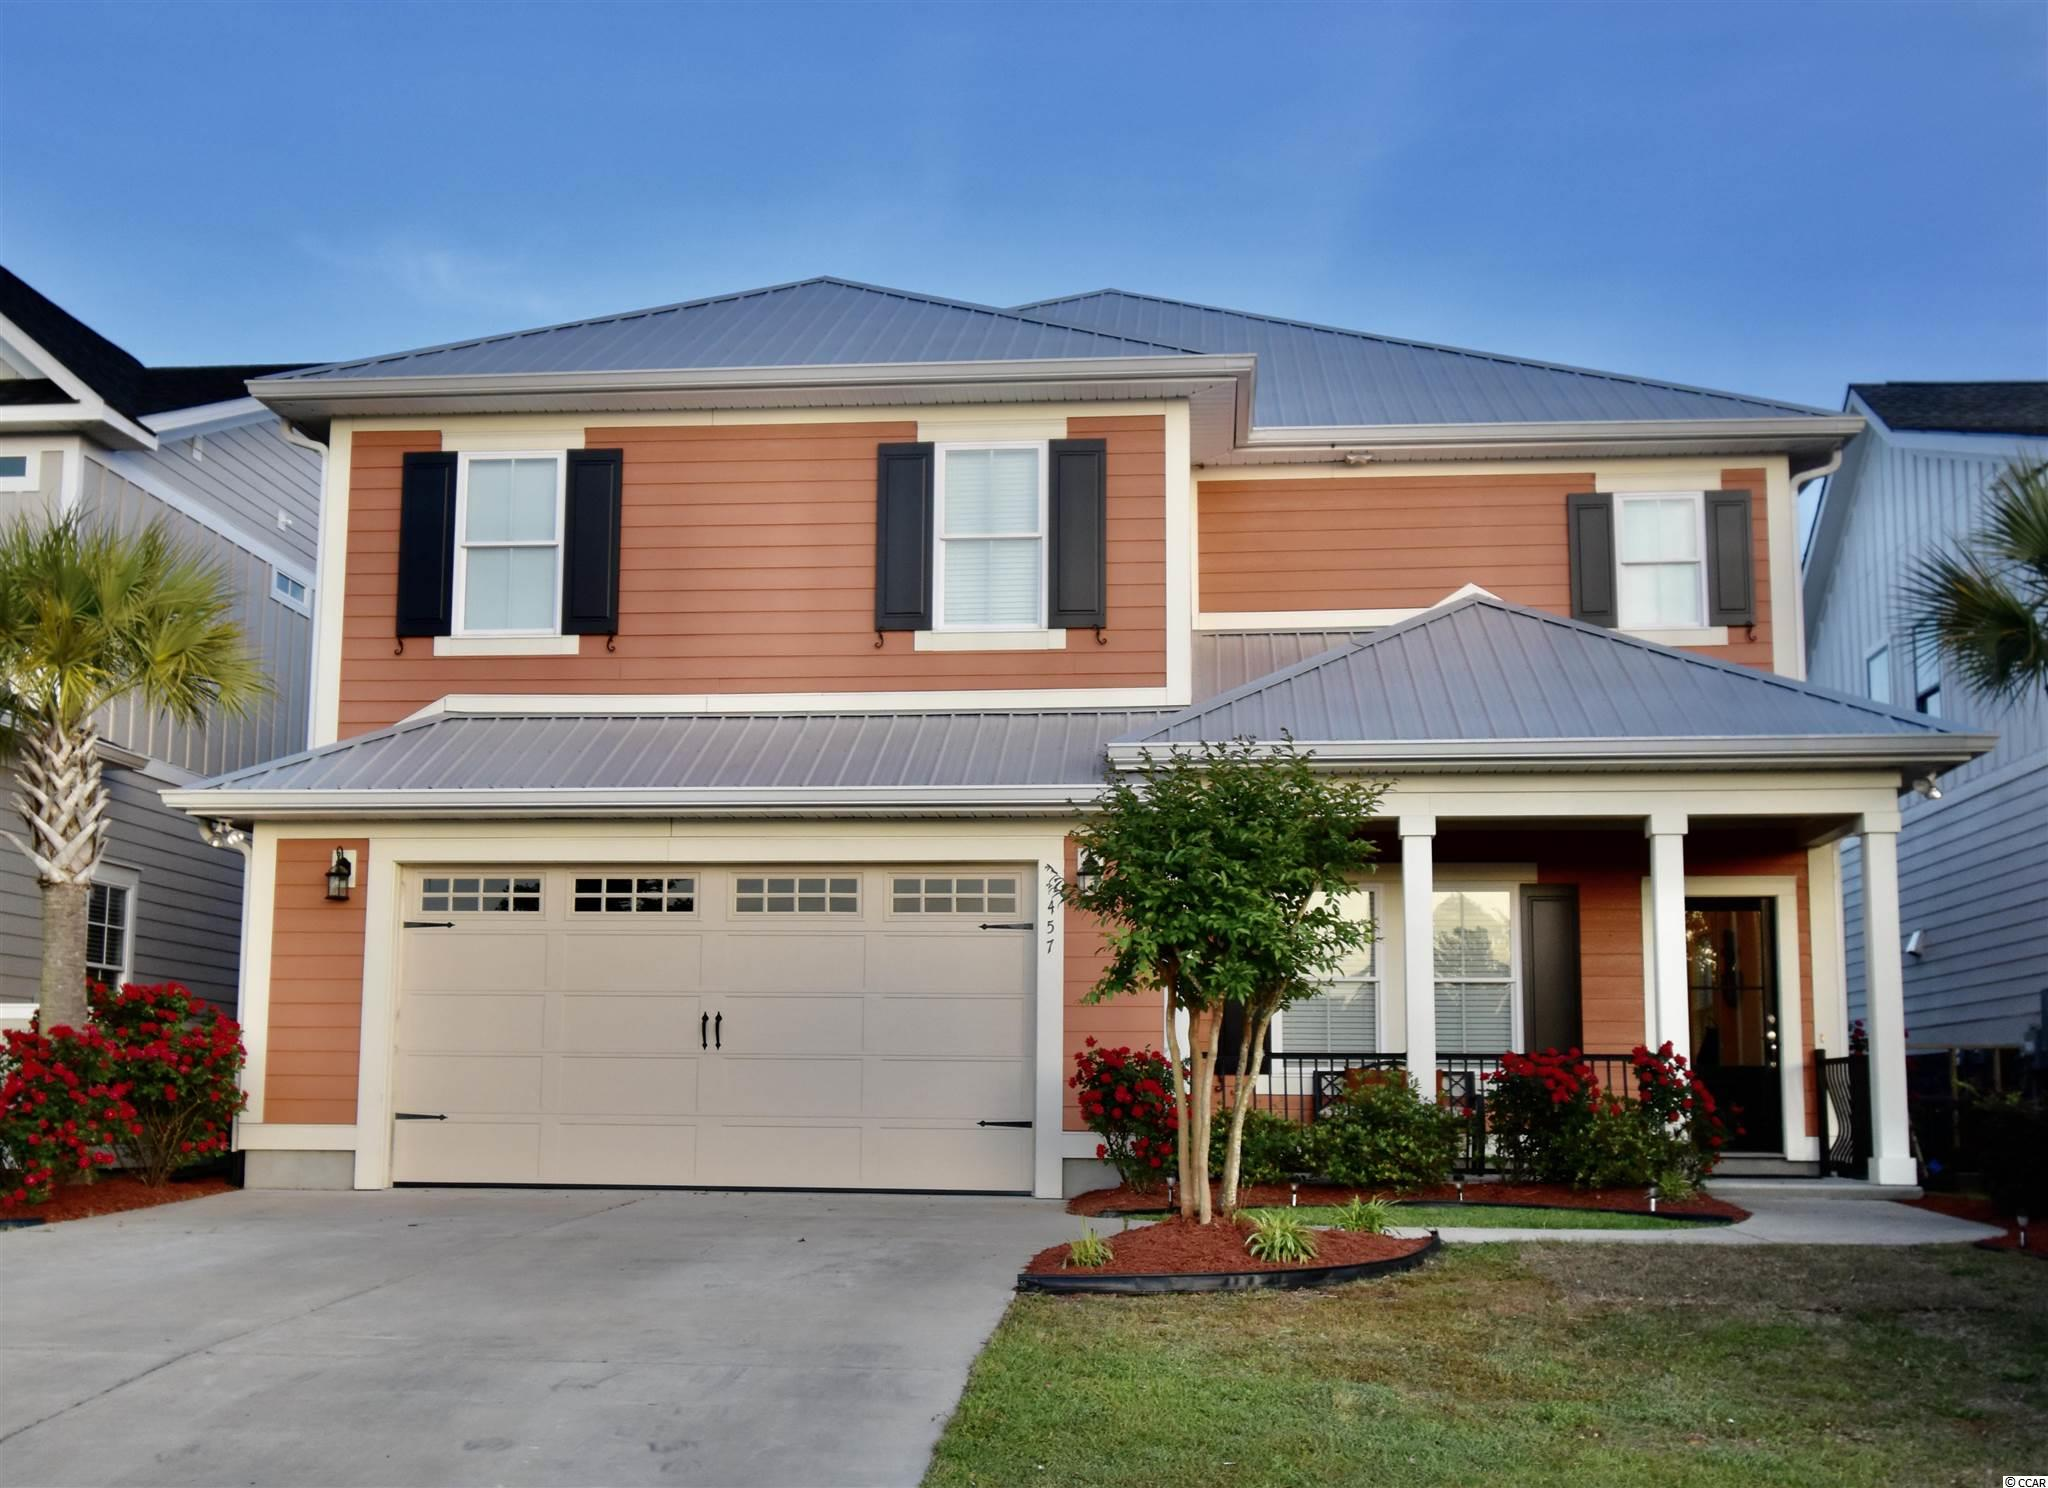 IntraCoastal Waterway living at its Best --- Home is located directly on the desirable IntraCoastal Waterway in Myrtle Beach! This move-in ready Custom Built home has 4 Bedrooms and 2 1/2 Half Baths in the Boardwalk at the Waterway gated community. You will immediately enter through the spacious Foyer and adore the open floor plan.  The Family Room boosts views of the salt water pool & waterway. The kitchen is great for entertaining including breakfast bar, pantry, granite countertops, stainless steel appliances and leads to the Dining area. Downstairs bedroom is currently used as a Study/Home office but can easily be used as the fourth bedroom and has an the adjacent bathroom. Wood plank tile can be found throughout the downstairs. Upstairs you will find the oversized Master Suite featuring a spacious room, double tray ceiling, garden tub, double sinks, granite countertops, tile flooring, large walk-in closet and a separate tiled shower with glass enclosure. You will aslo find two additional Bedrooms, a full Bathroom, and the second Family Room. Glass doors lead you to the outdoor balcony with breathtaking views either from the Master Suite or upstairs Family Room which runs the length of the home. To complete the home, the fenced backyard boasts 50' of waterfront featuring a private 6' x 20' dock with boat lift that will accommodate up to 10,000 lbs. Located close to the heart of Myrtle Beach --- close to shopping, dining, grocery stores, schools, pier fishing, ocean & so much more! The community includes a boardwalk which runs the full length of the community on the IntraCoastal Waterway, gazebo, private boat ramp, day dock, and gated outdoor boat storage.